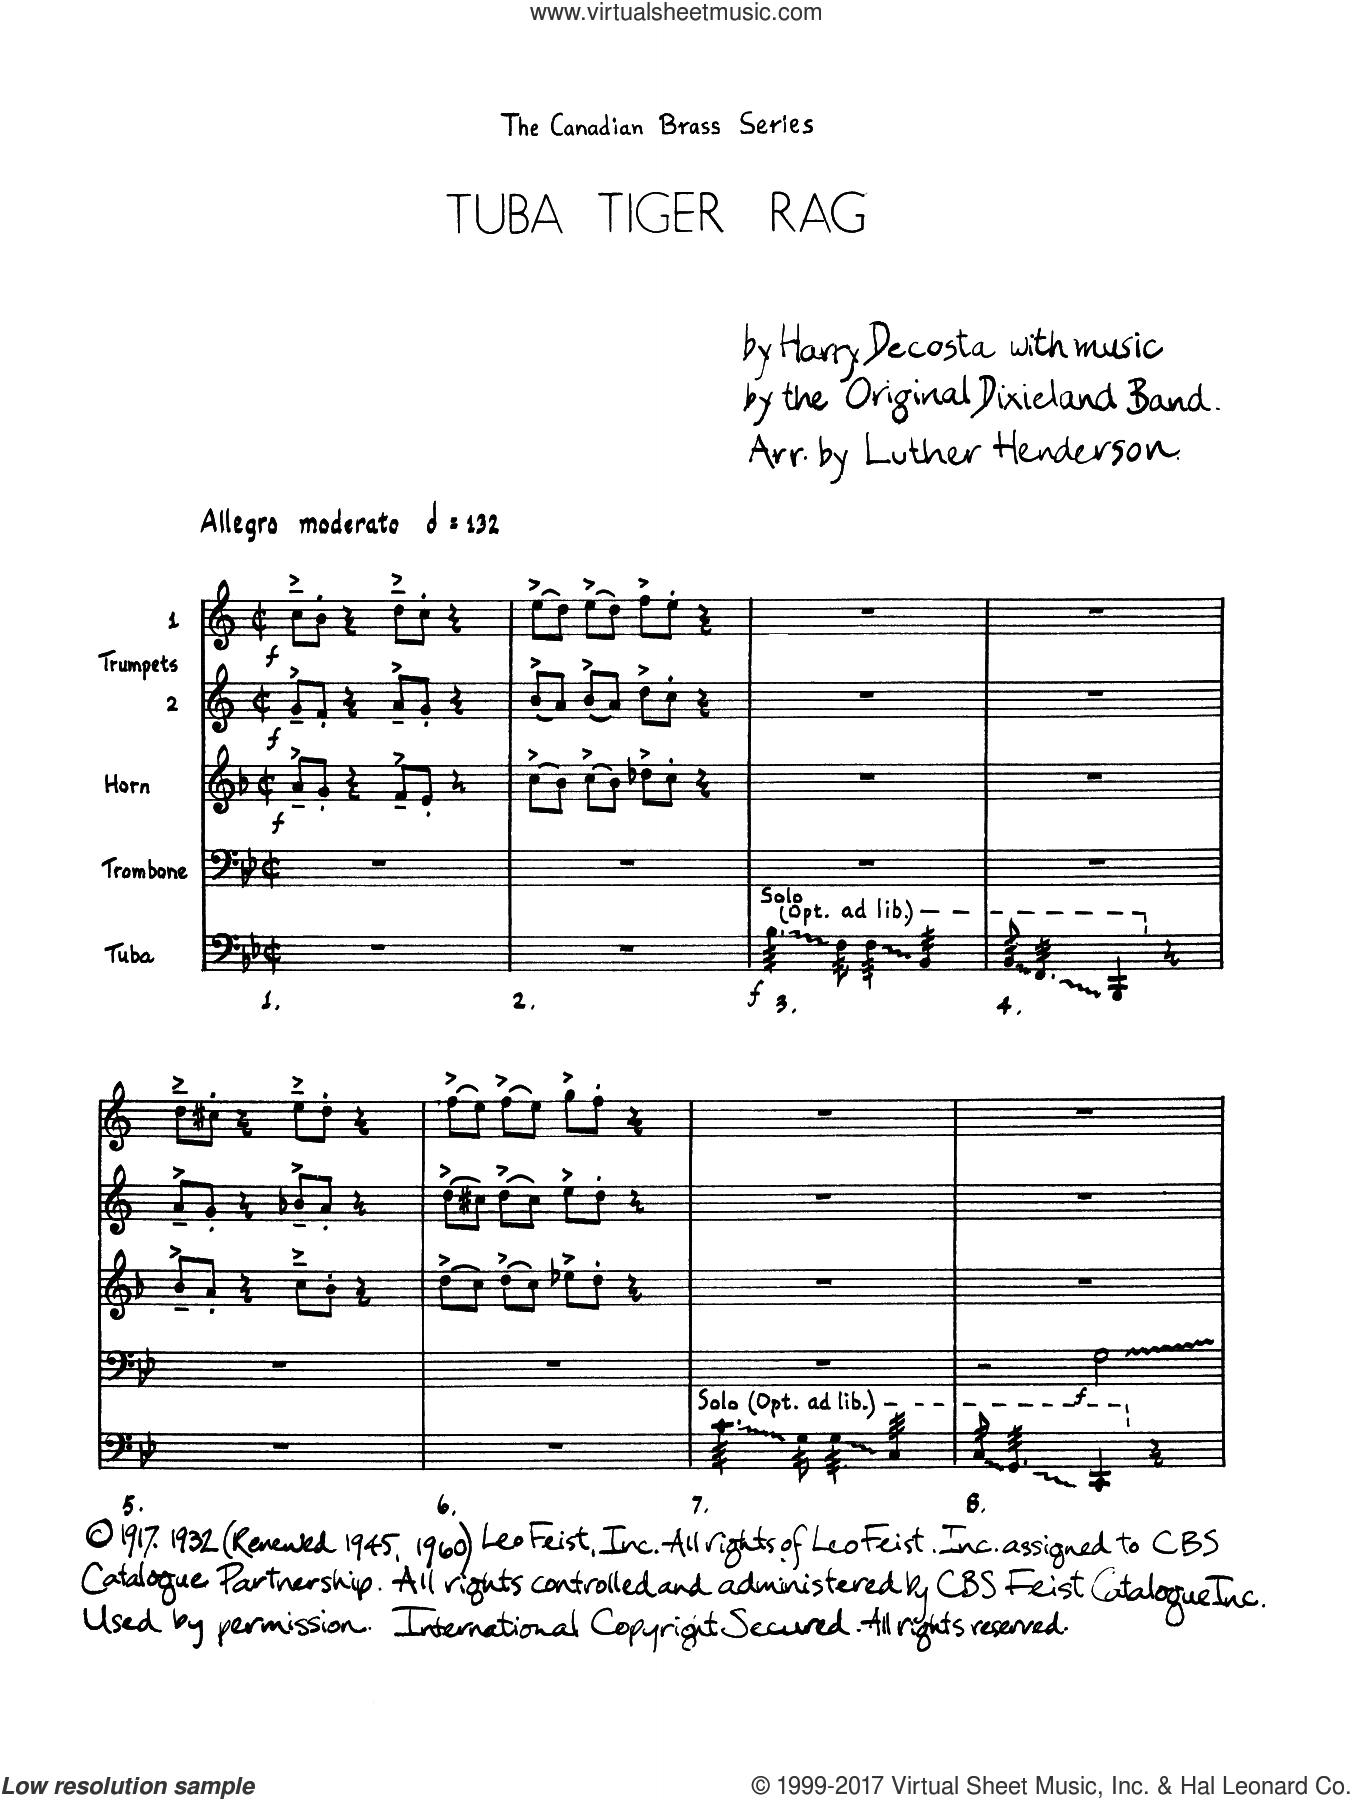 Tuba Tiger Rag (COMPLETE) sheet music for brass quintet by Luther Henderson and Harry DeCosta, intermediate skill level